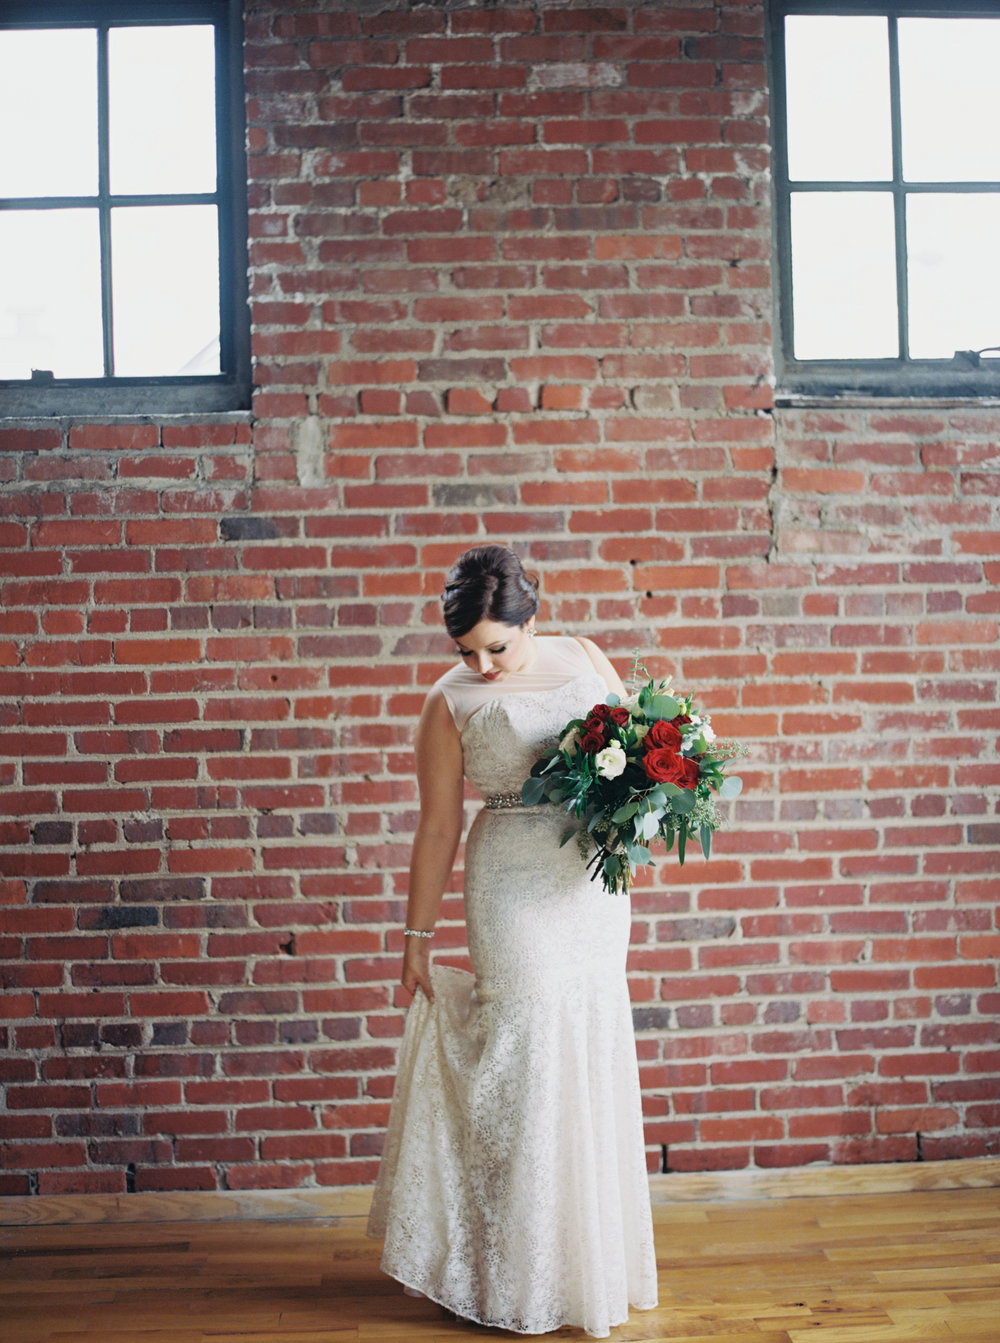 Jessica_Bryan_Wedding_Standard_Knoxville_Abigail_Malone_Photography-161.jpg